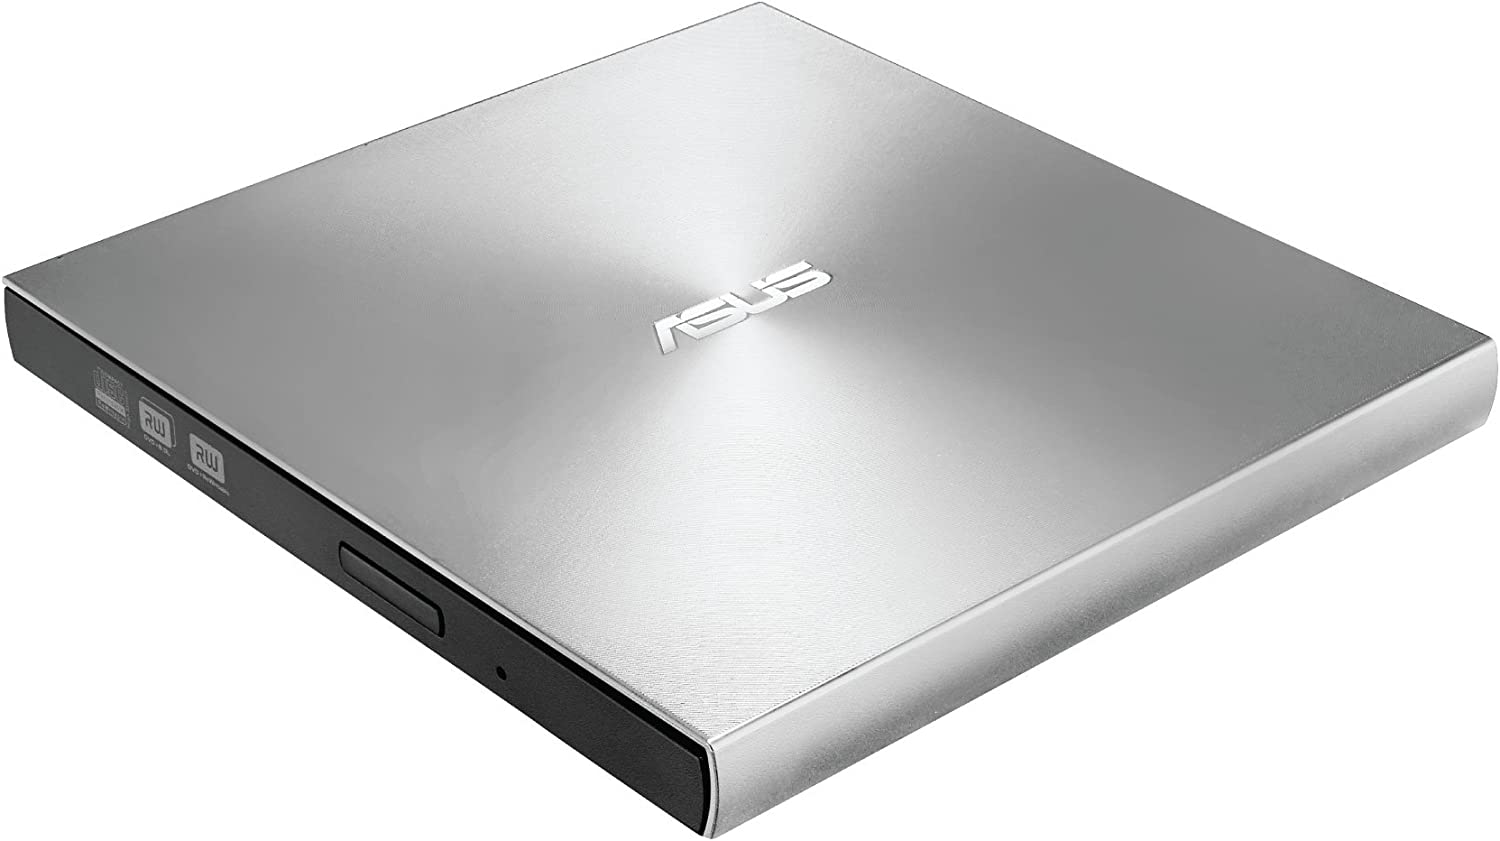 ASUSZenDrive Silver 13mm External 8X DVD/ Burner Drive +/-RW with M-Disc Support, Compatible with both Mac & Windows and Nero BackItUp for Android devices (USB 2.0 & Type-C cables included)